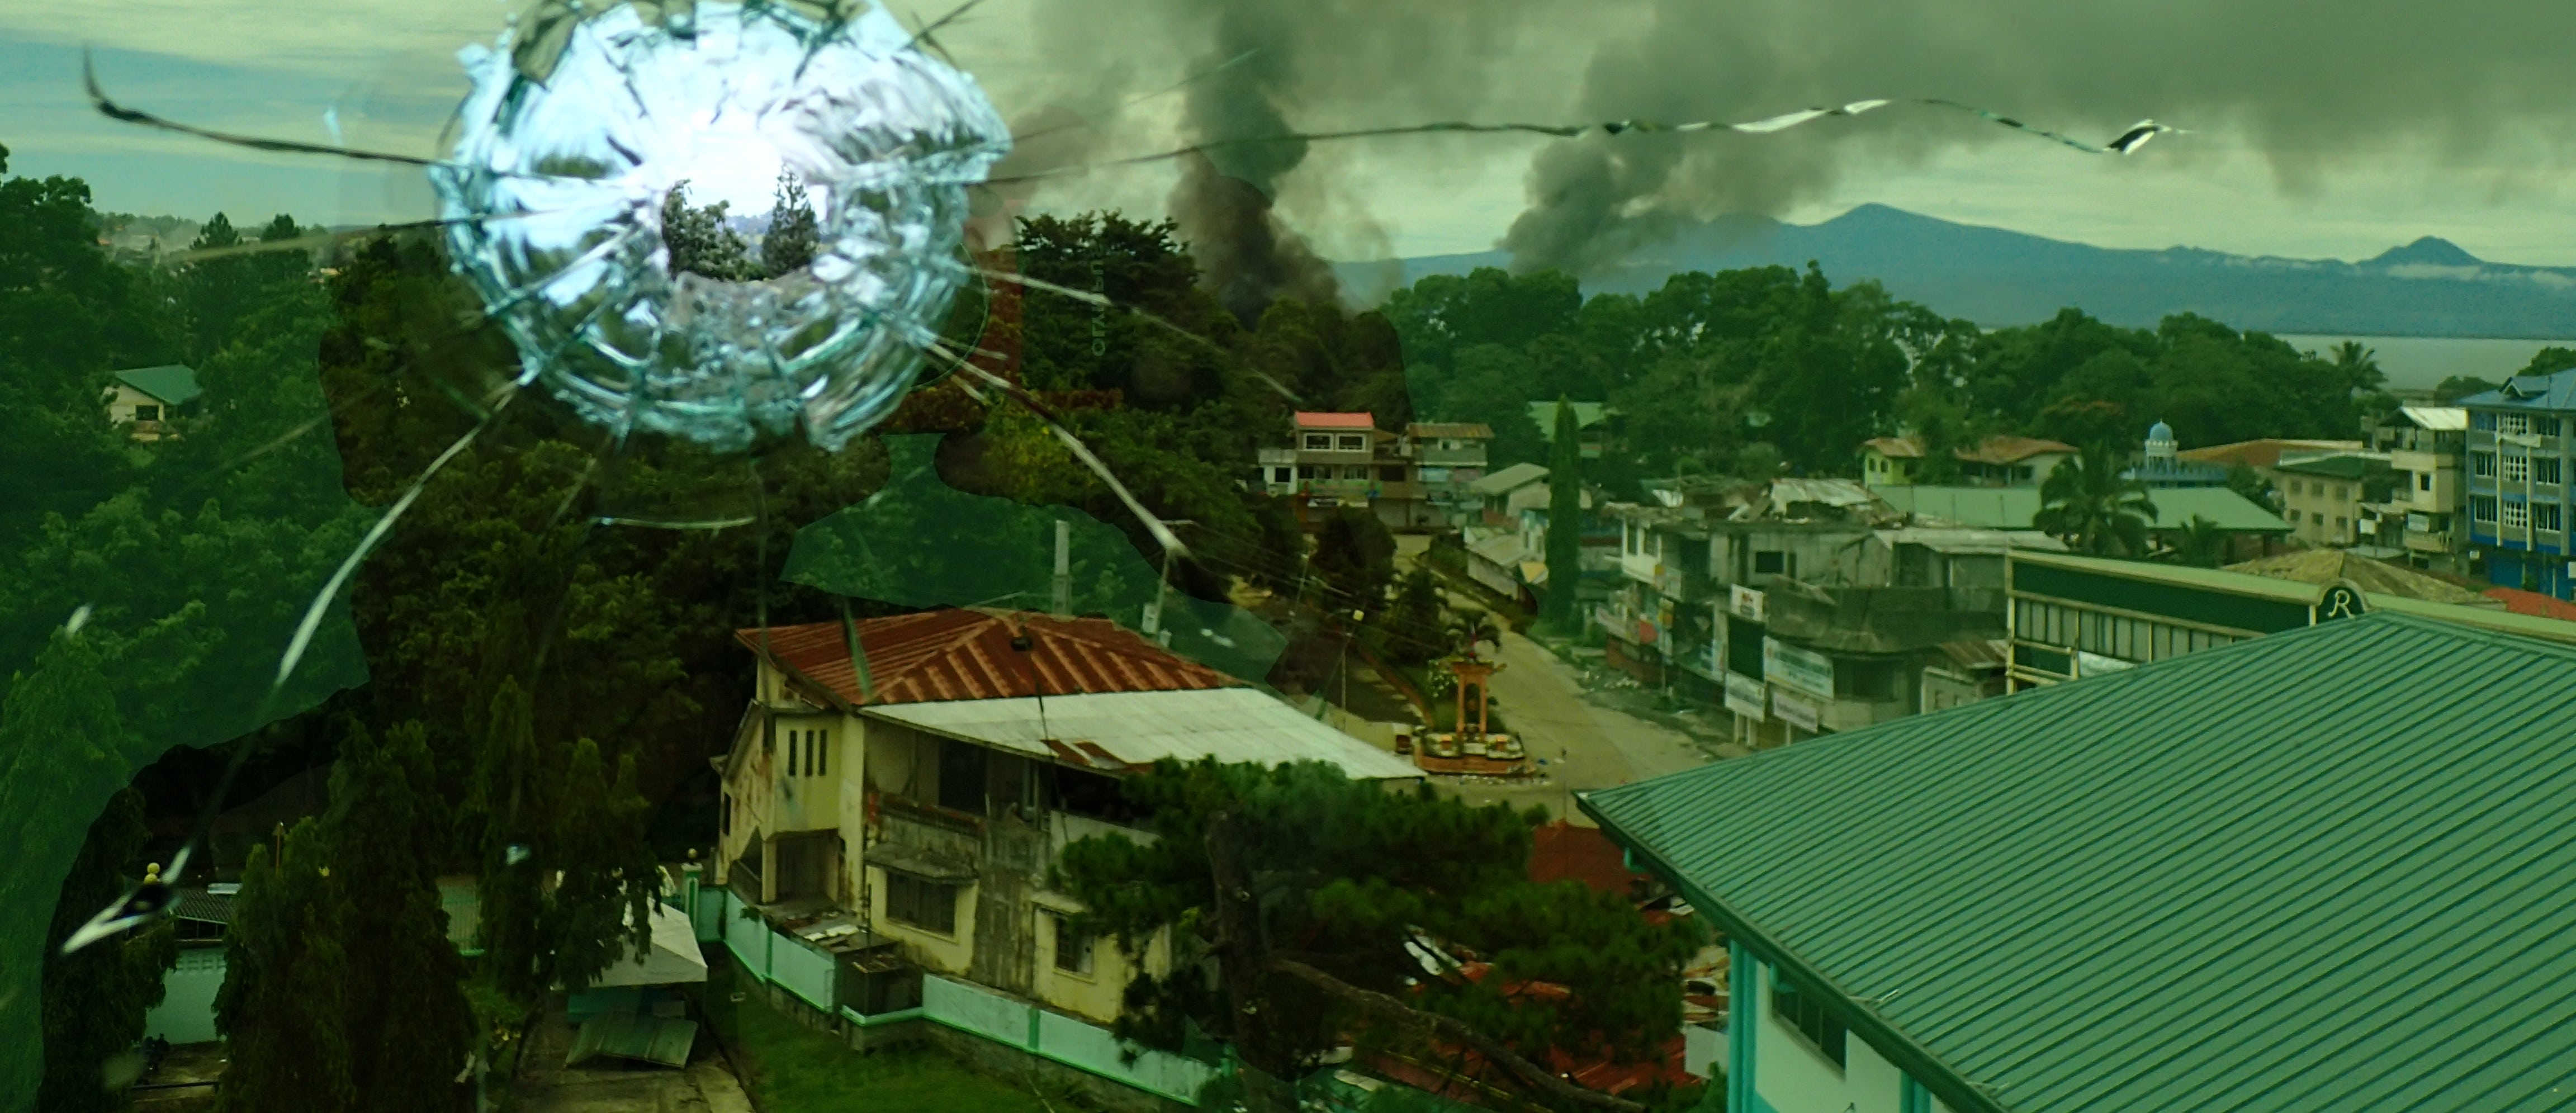 The view from Amai Pakpak Medical Center in Marawi, June 2017 (Photo: Getty Images/Pacific Press)